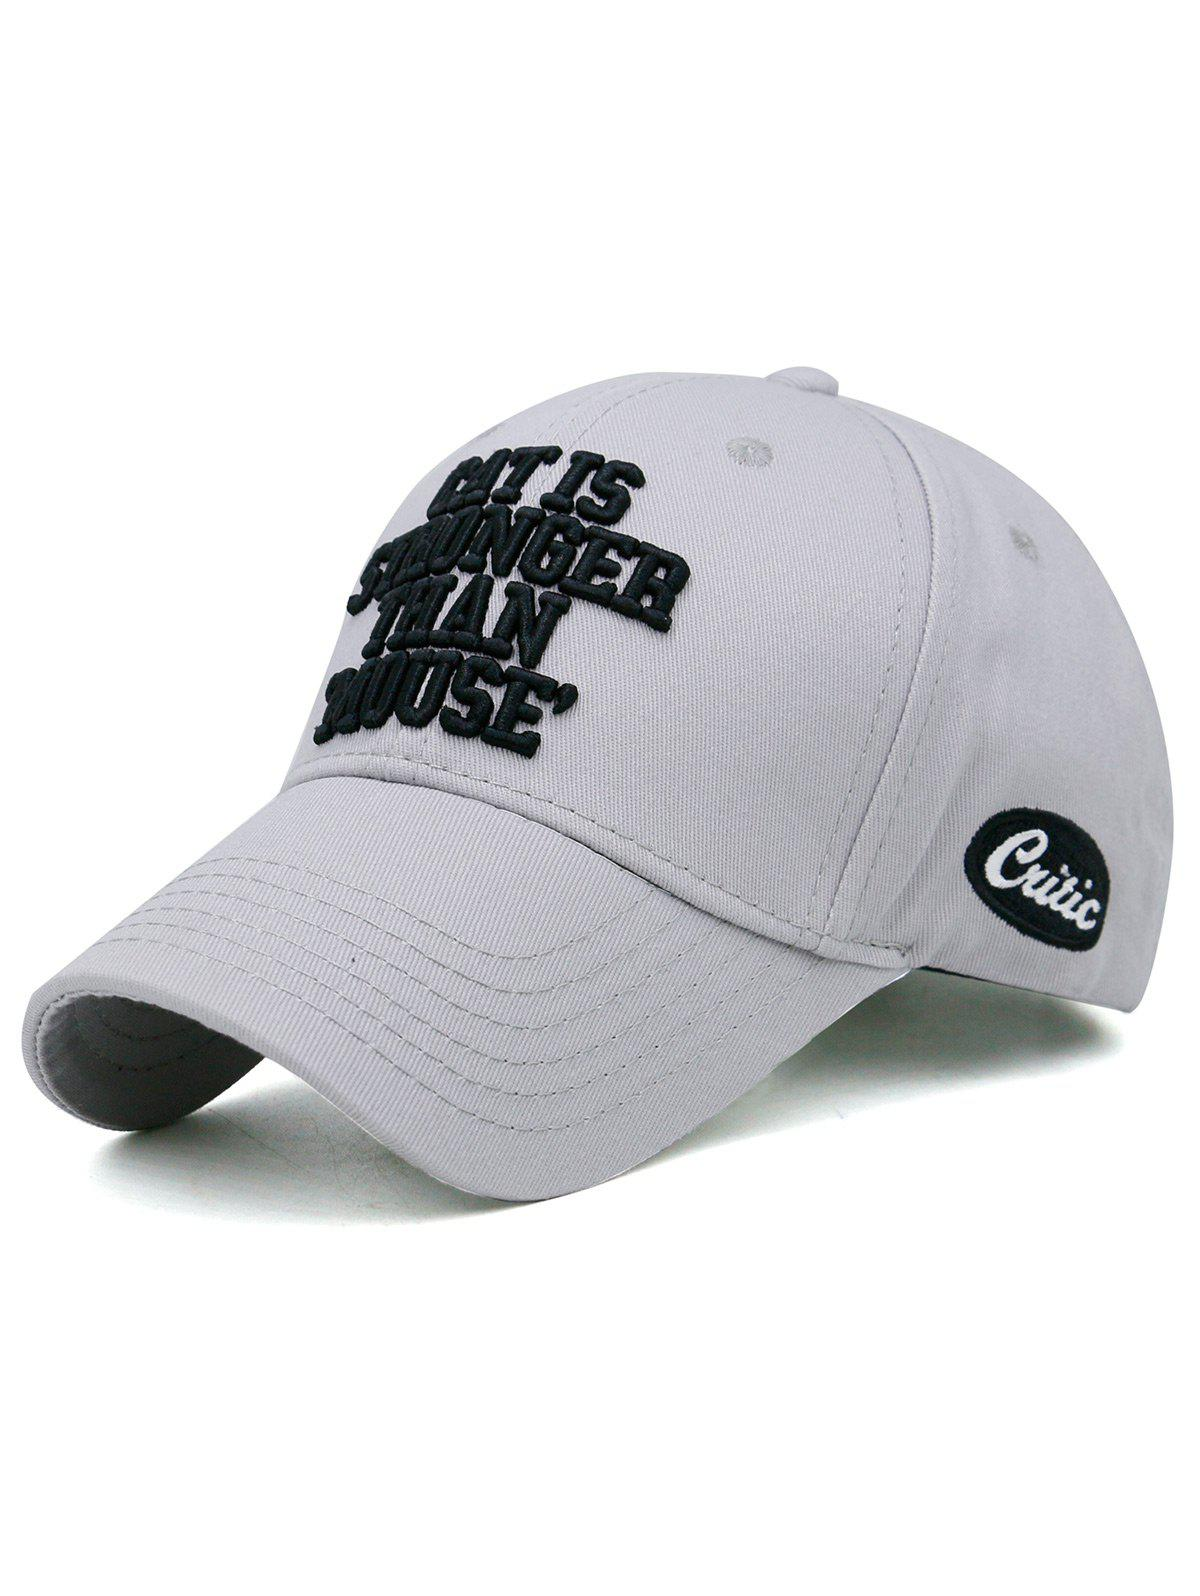 Latest CAT IS STRONGER THAN MOUSE Embroidery Adjustable Baseball Hat